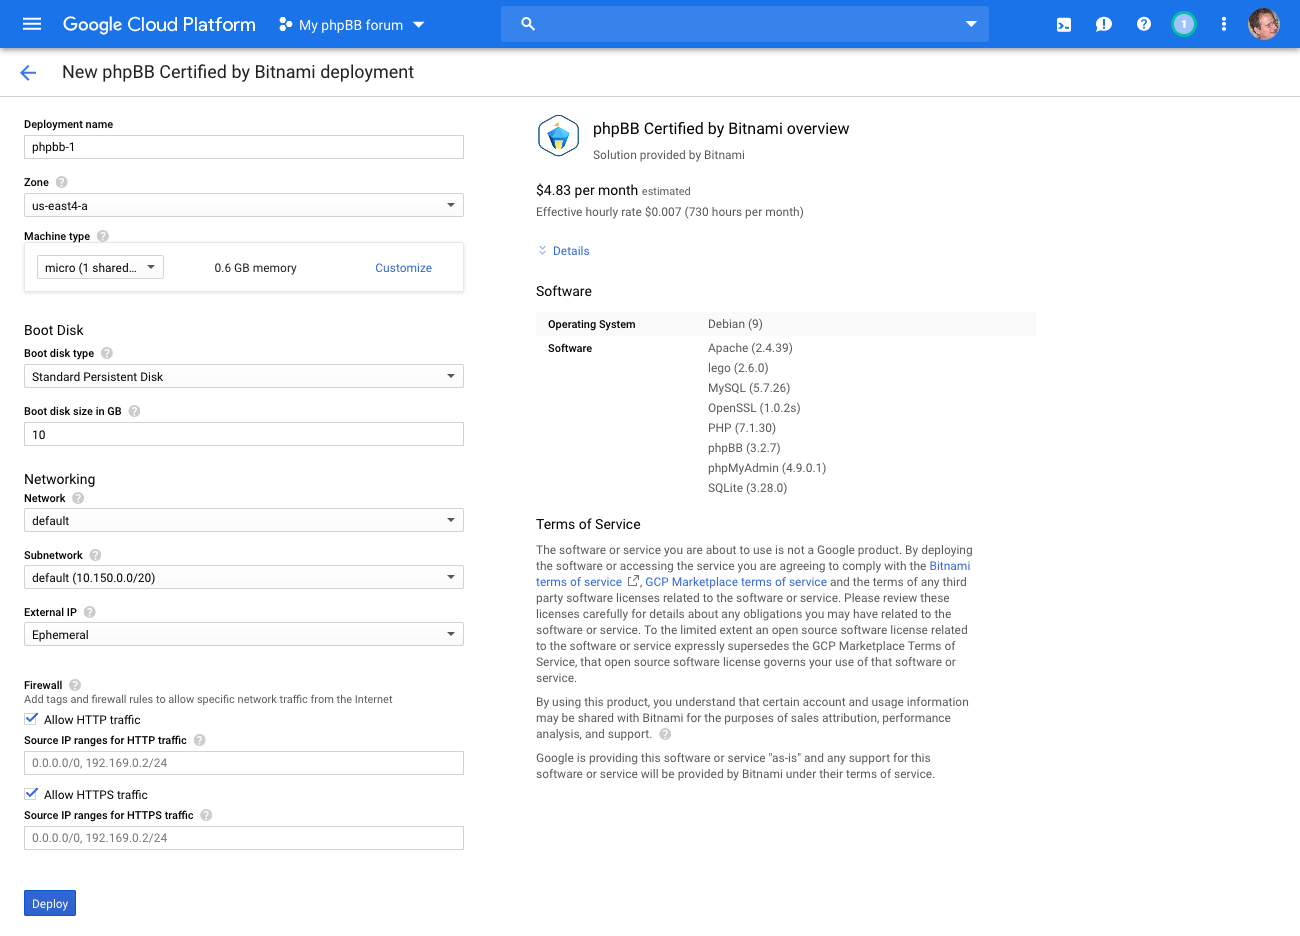 Installing phpBB in the Google Cloud » phpBB Services